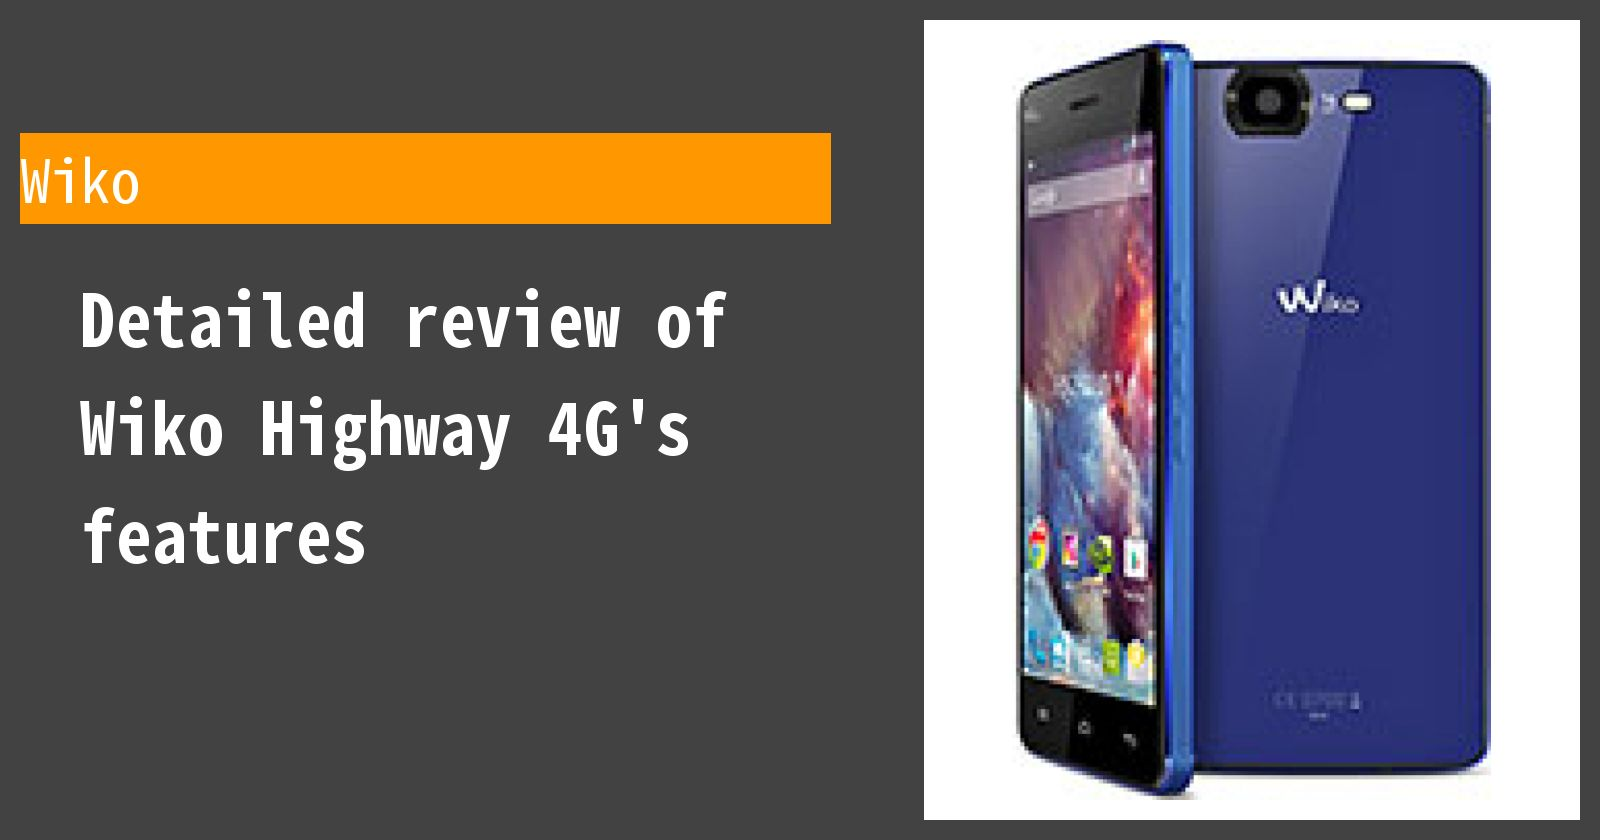 Detailed review of Wiko Highway 4G's features